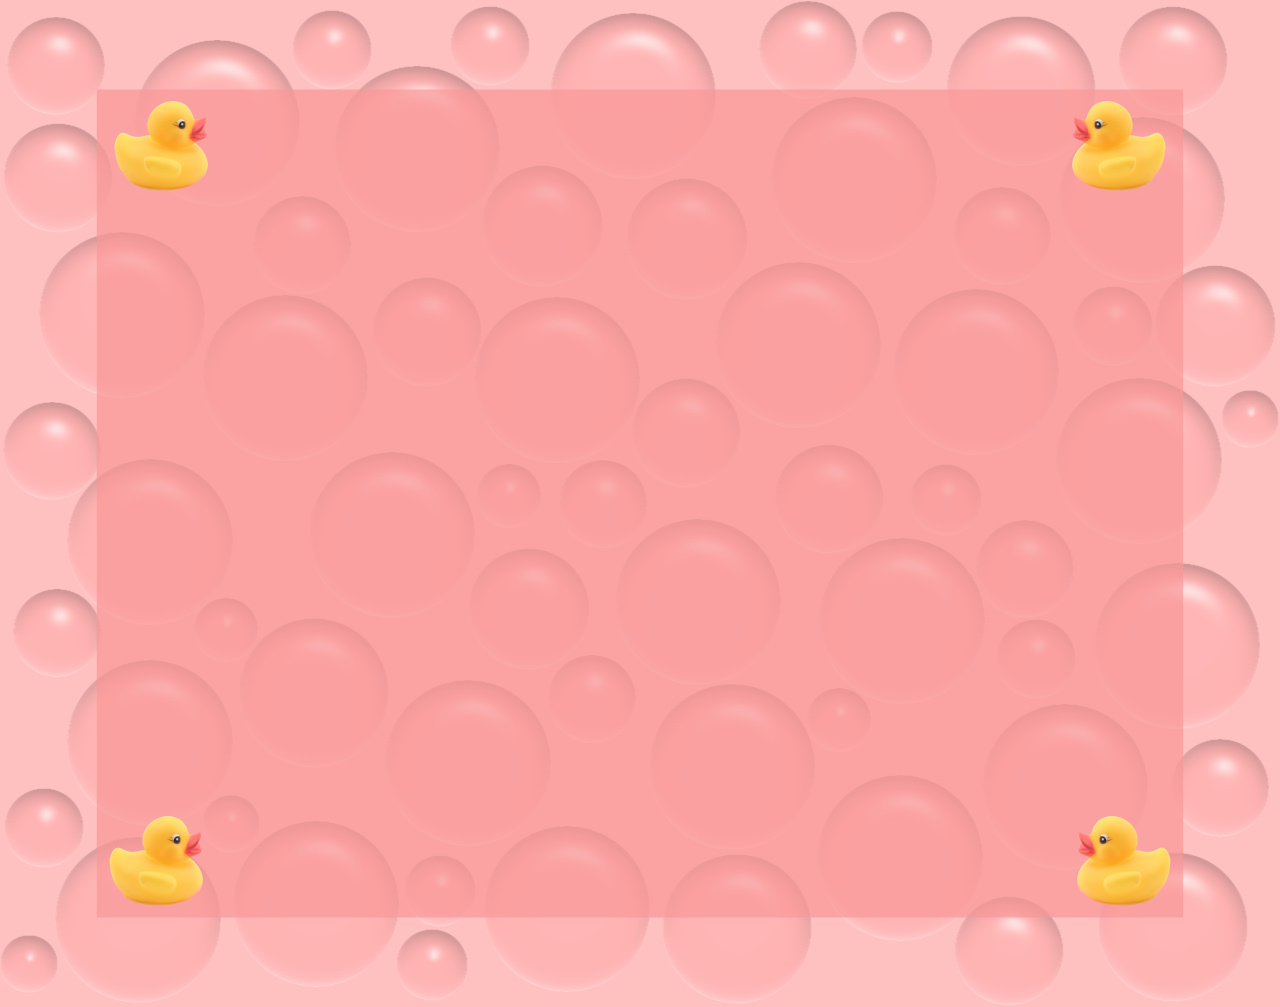 Download free baby photo ppt backgrounds baby photo ppt backgrounds toneelgroepblik Choice Image